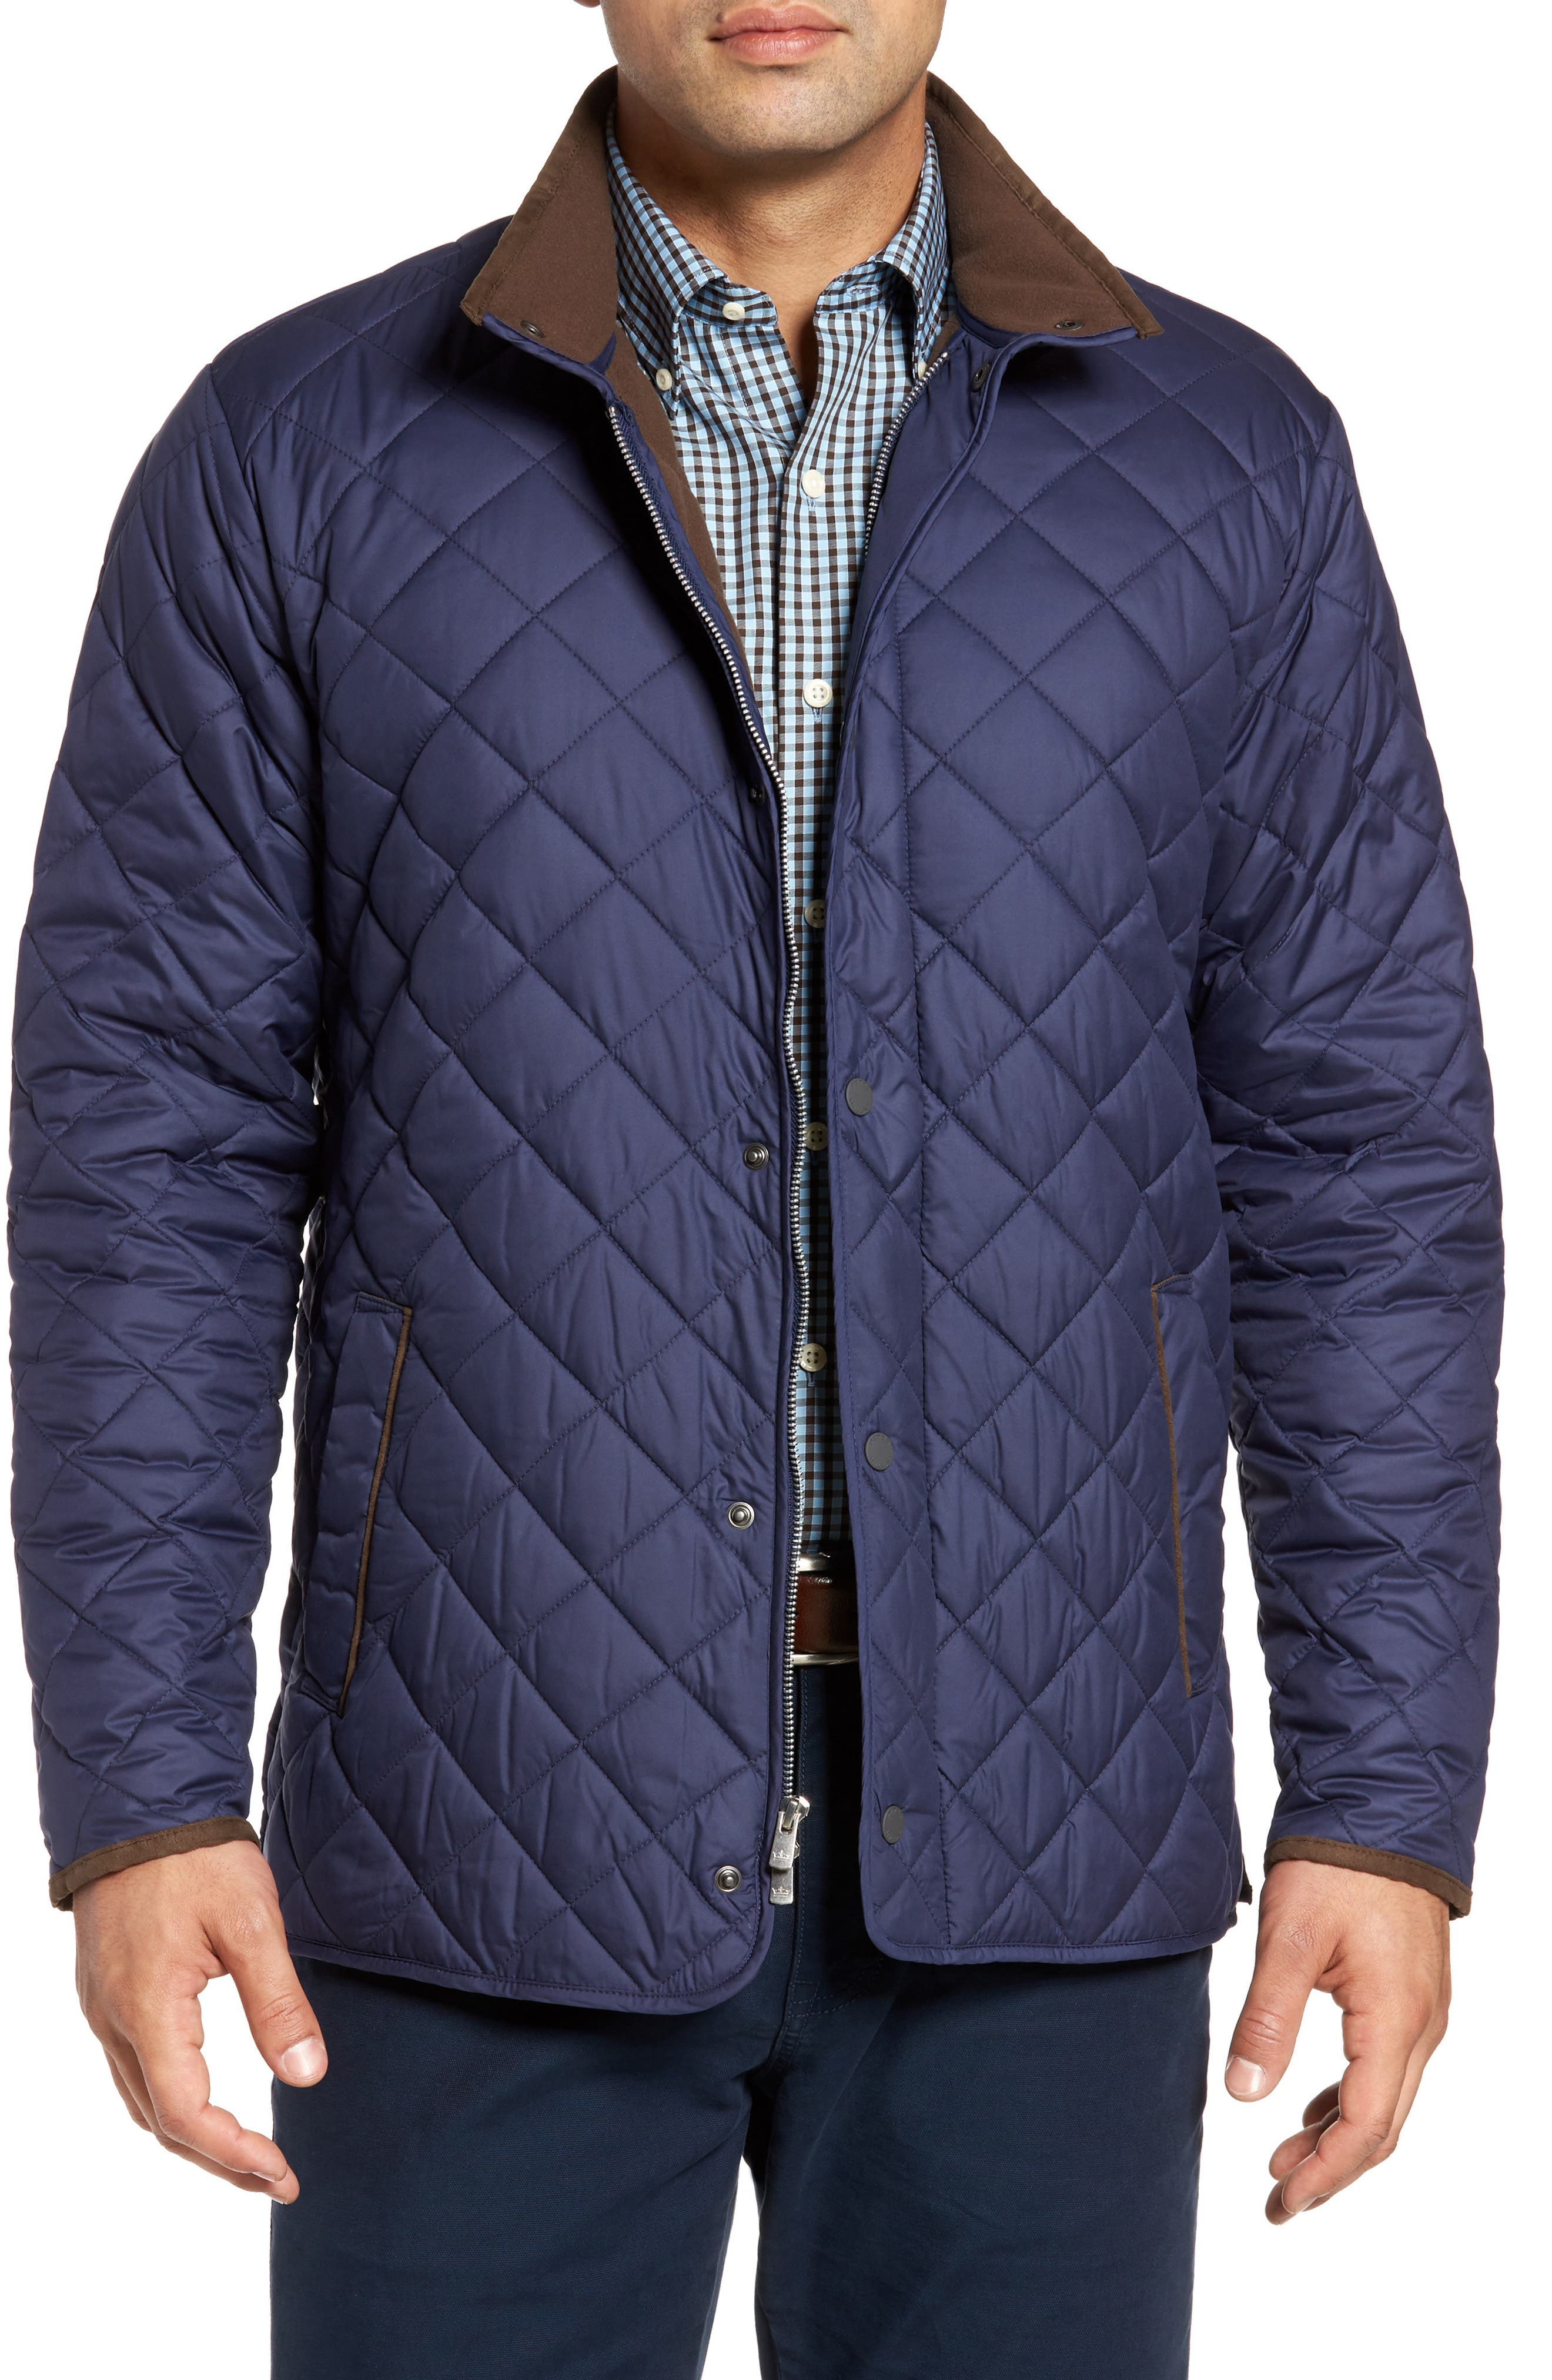 Alternate Image 1 Selected - Peter Millar Suffolk Quilted Water-Resistant Car Coat